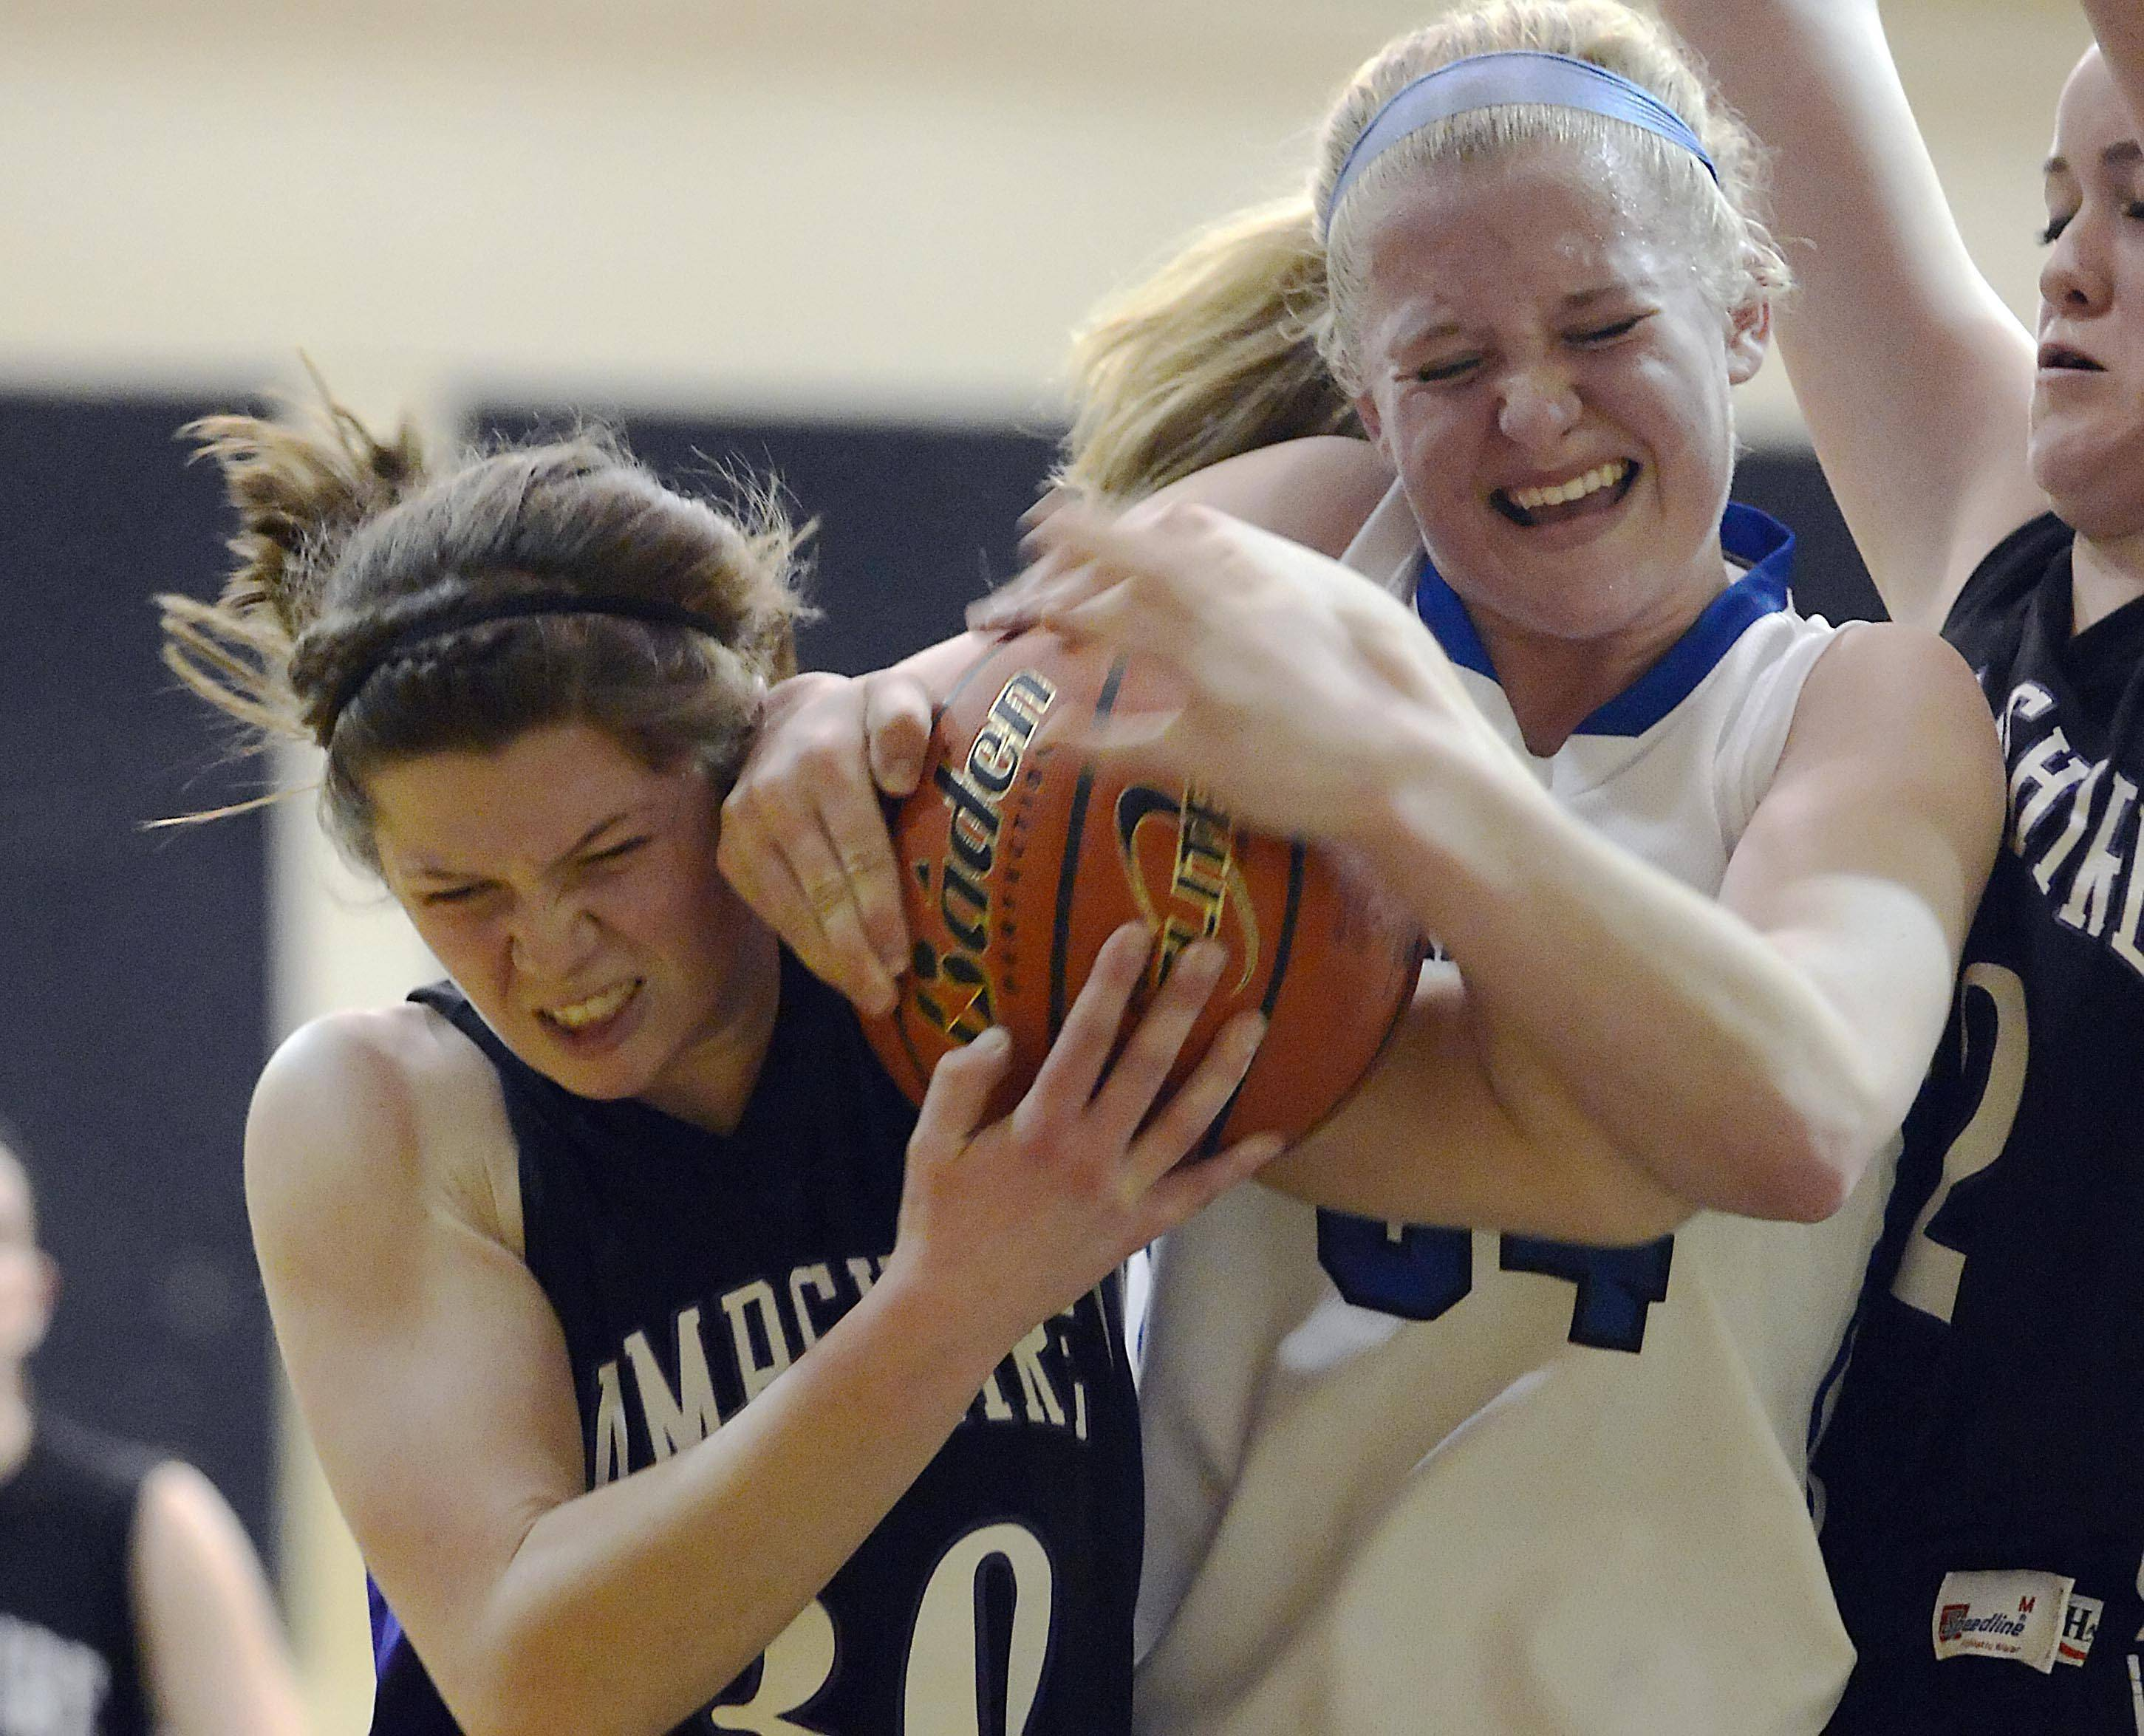 Burlington Central's Samantha Pryor and Hampshire's Tricia Dumoulin fight for the ball Wednesday at the Aurora Central Catholic regional semifinal.